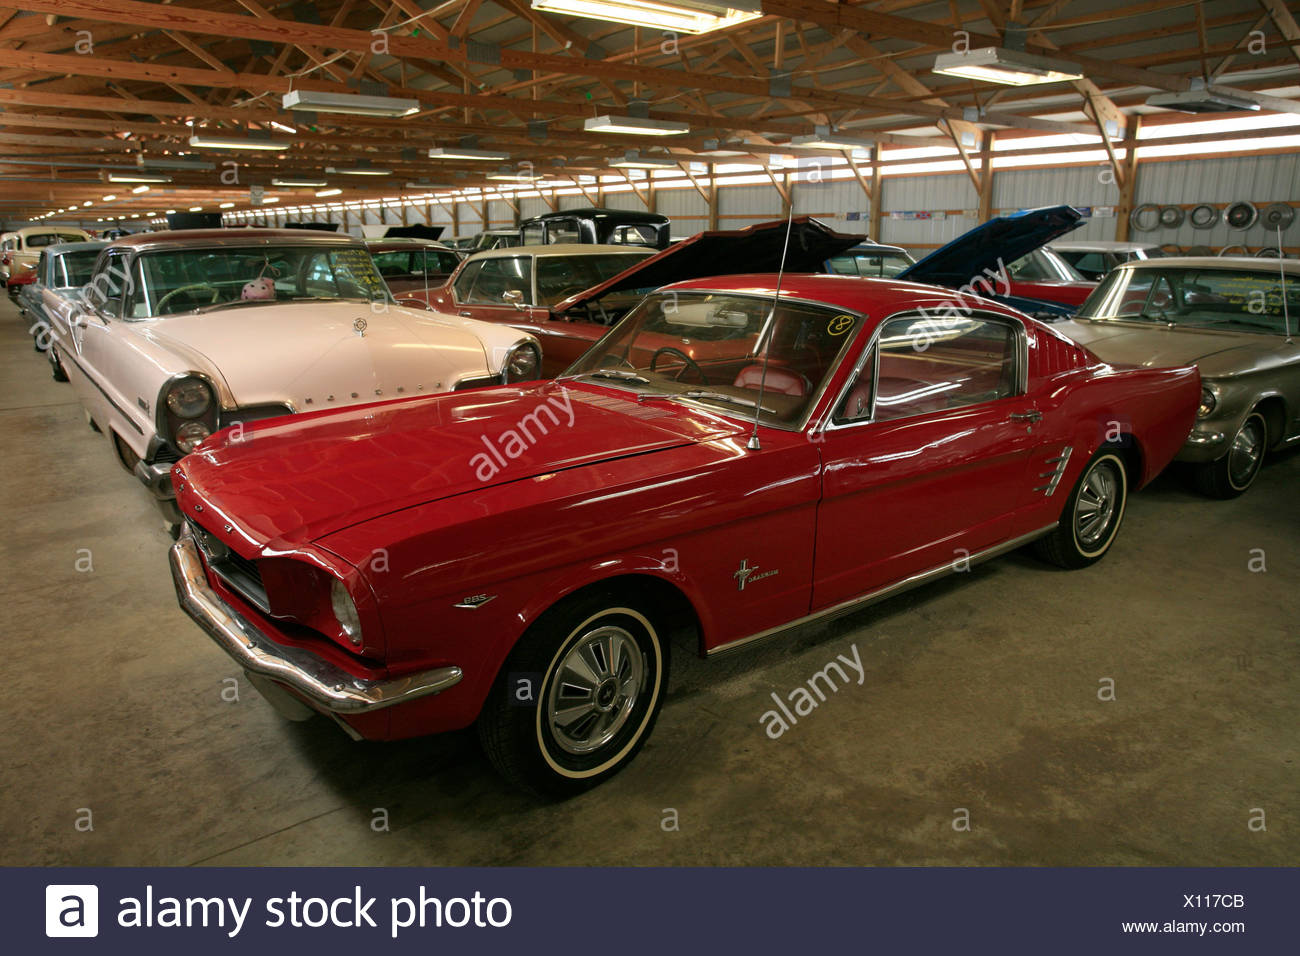 Vintage Car Show Stock Photos & Vintage Car Show Stock Images - Alamy